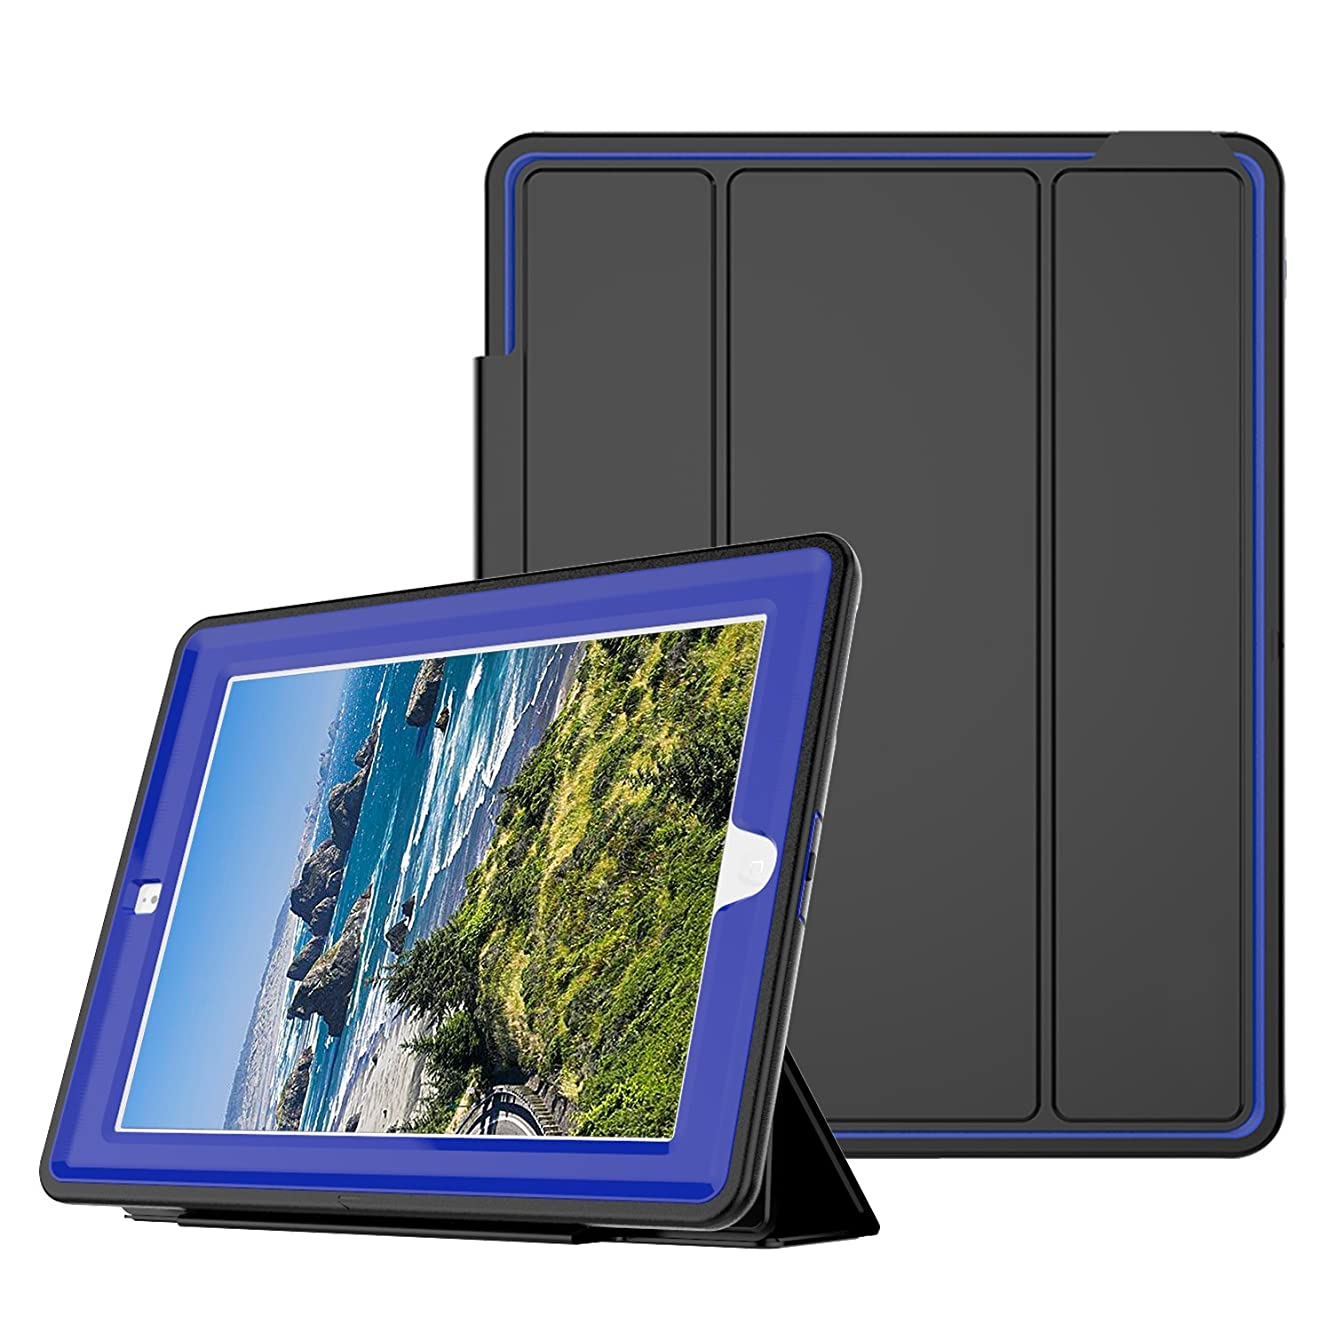 Qelus iPad 2 3 4 Case, Three Layer Hybrid Shockproof Rugged Protective Heavy Duty with Magnetic Stand, Smart Cover Auto Wake/Sleep Protective Case Cover for Apple iPad 2/iPad 3/iPad 4(Black+Blue)